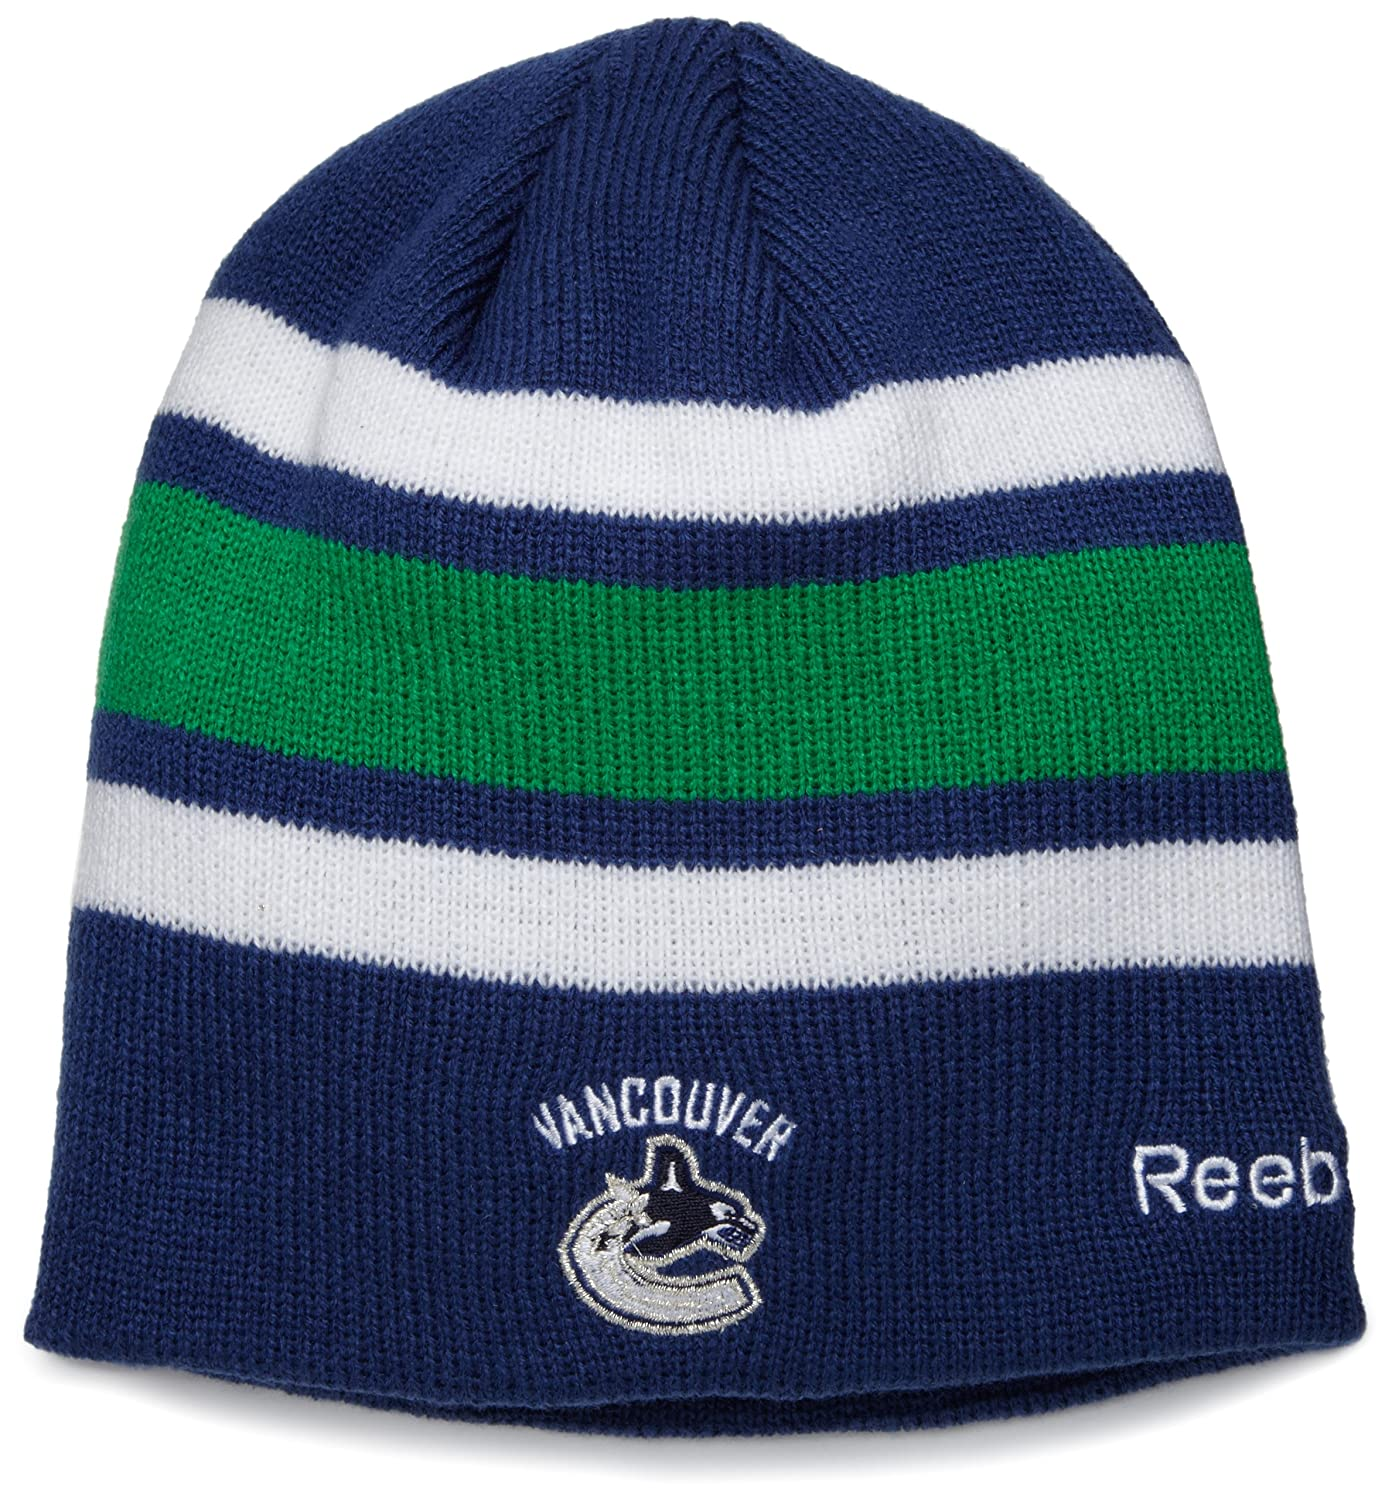 ebf2ba4452b ... italy amazon vancouver canucks official team player knit hat sports fan  beanies clothing bfc86 12189